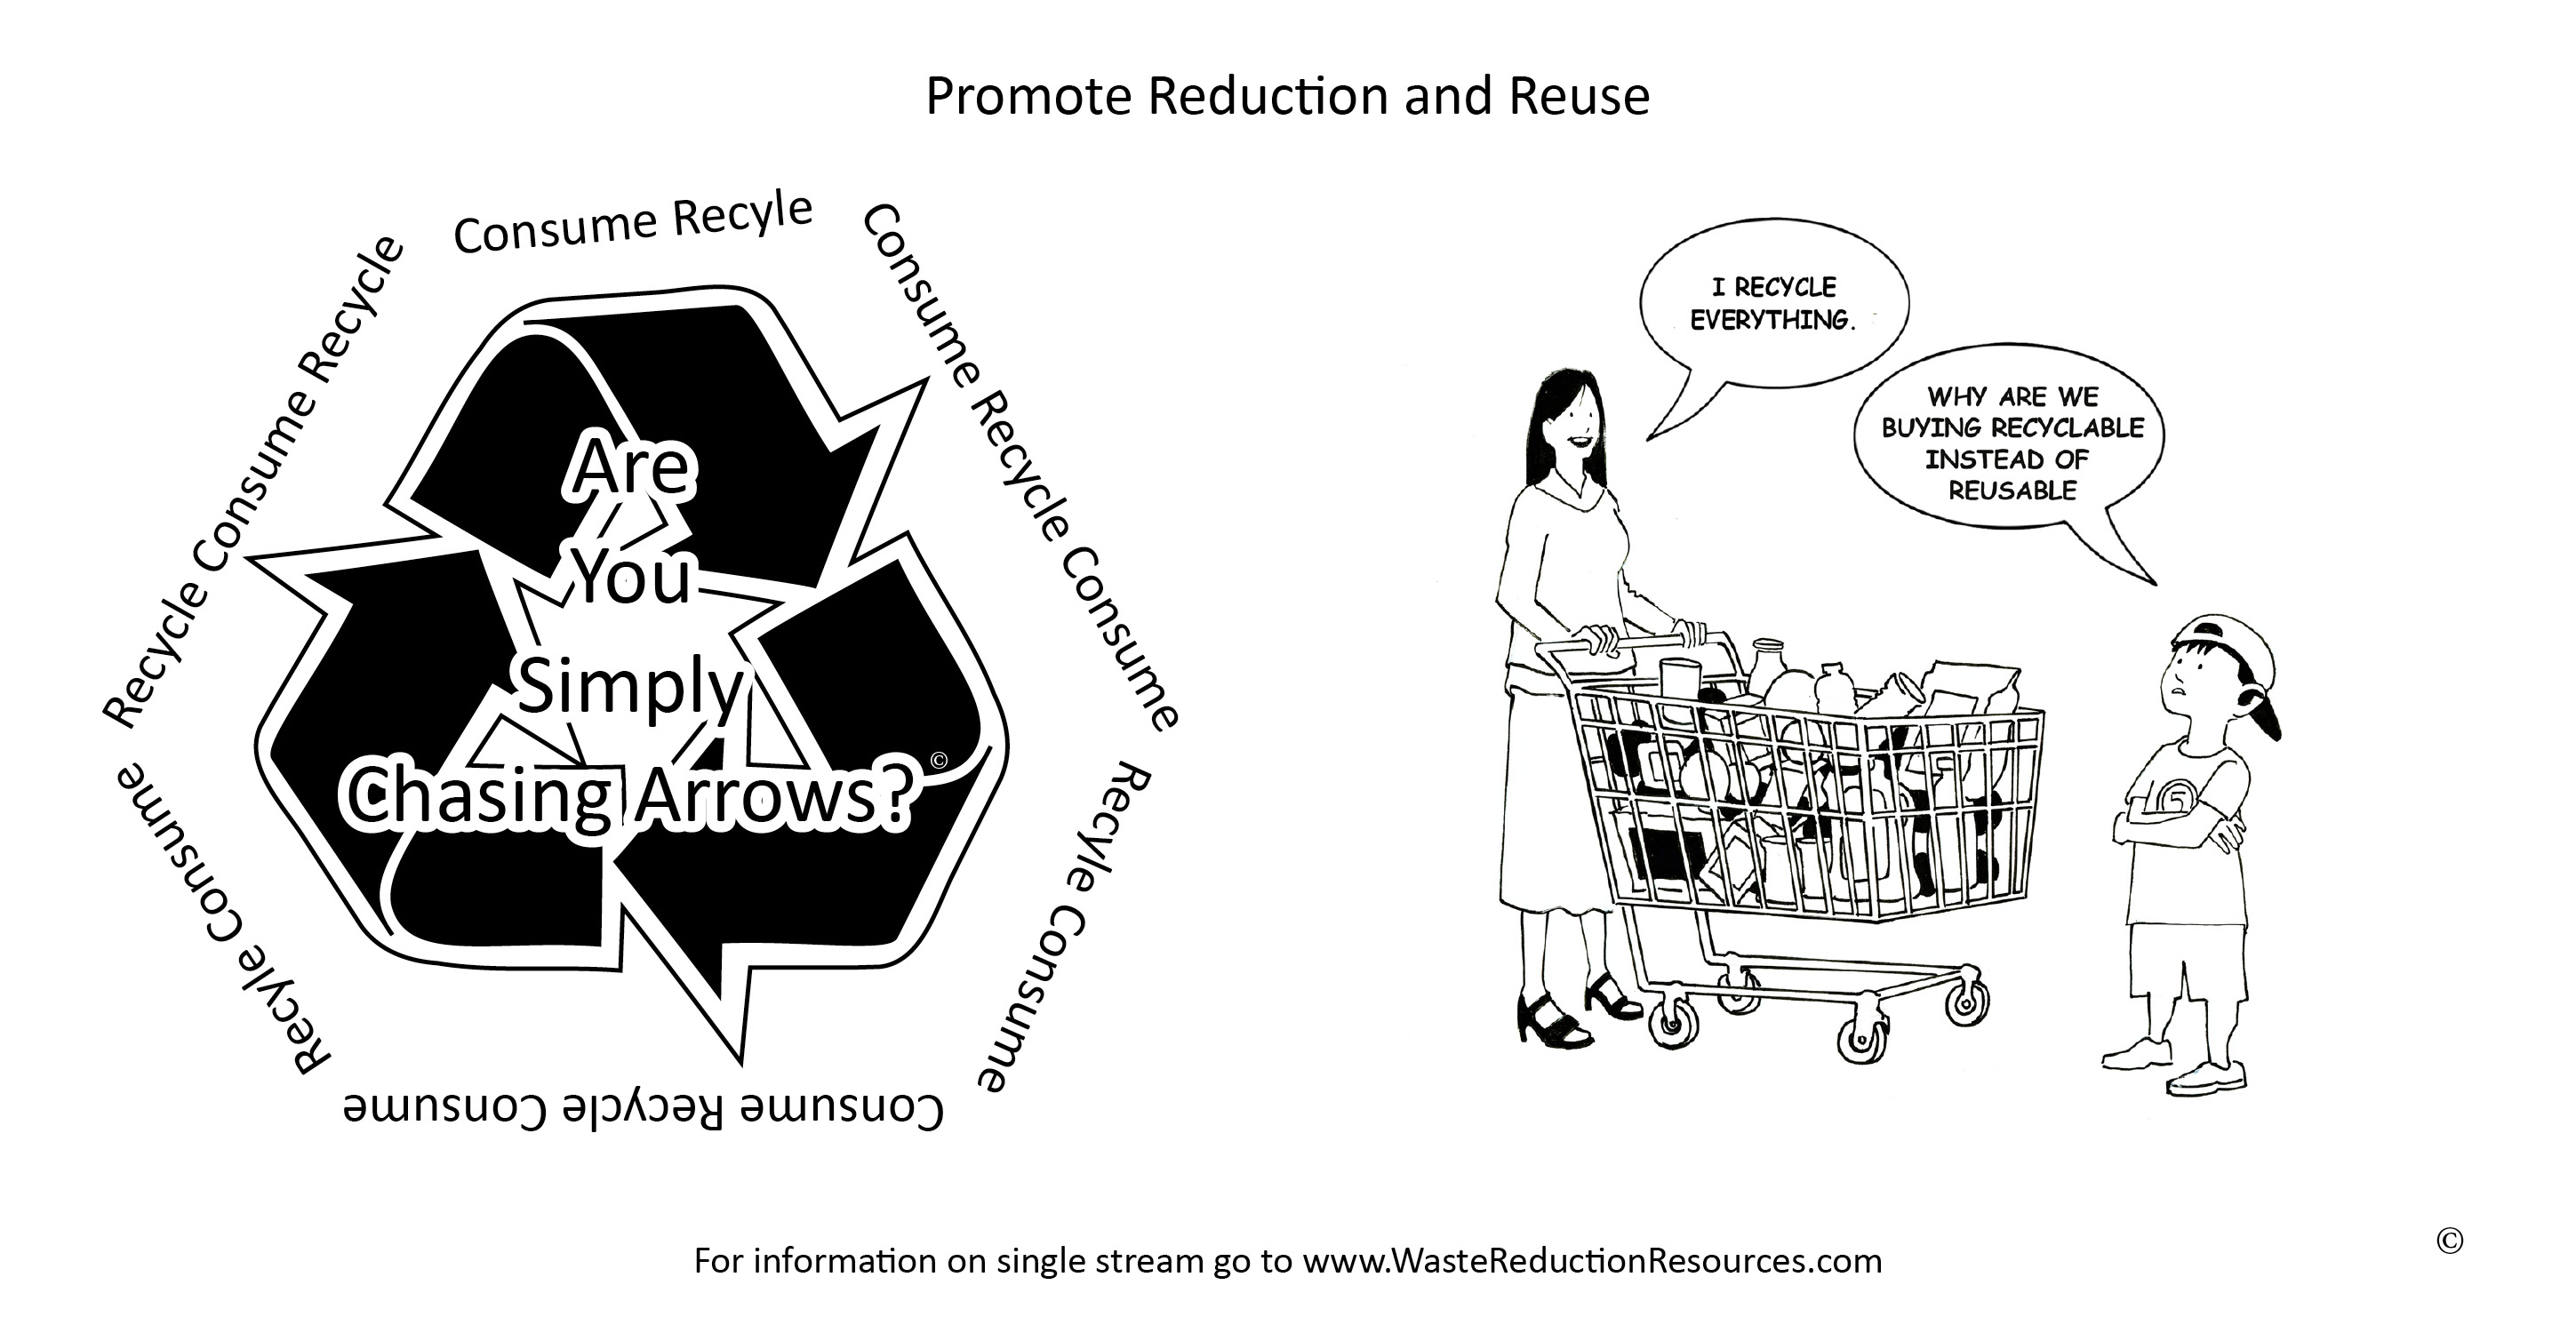 Promote Reduction and Reuse